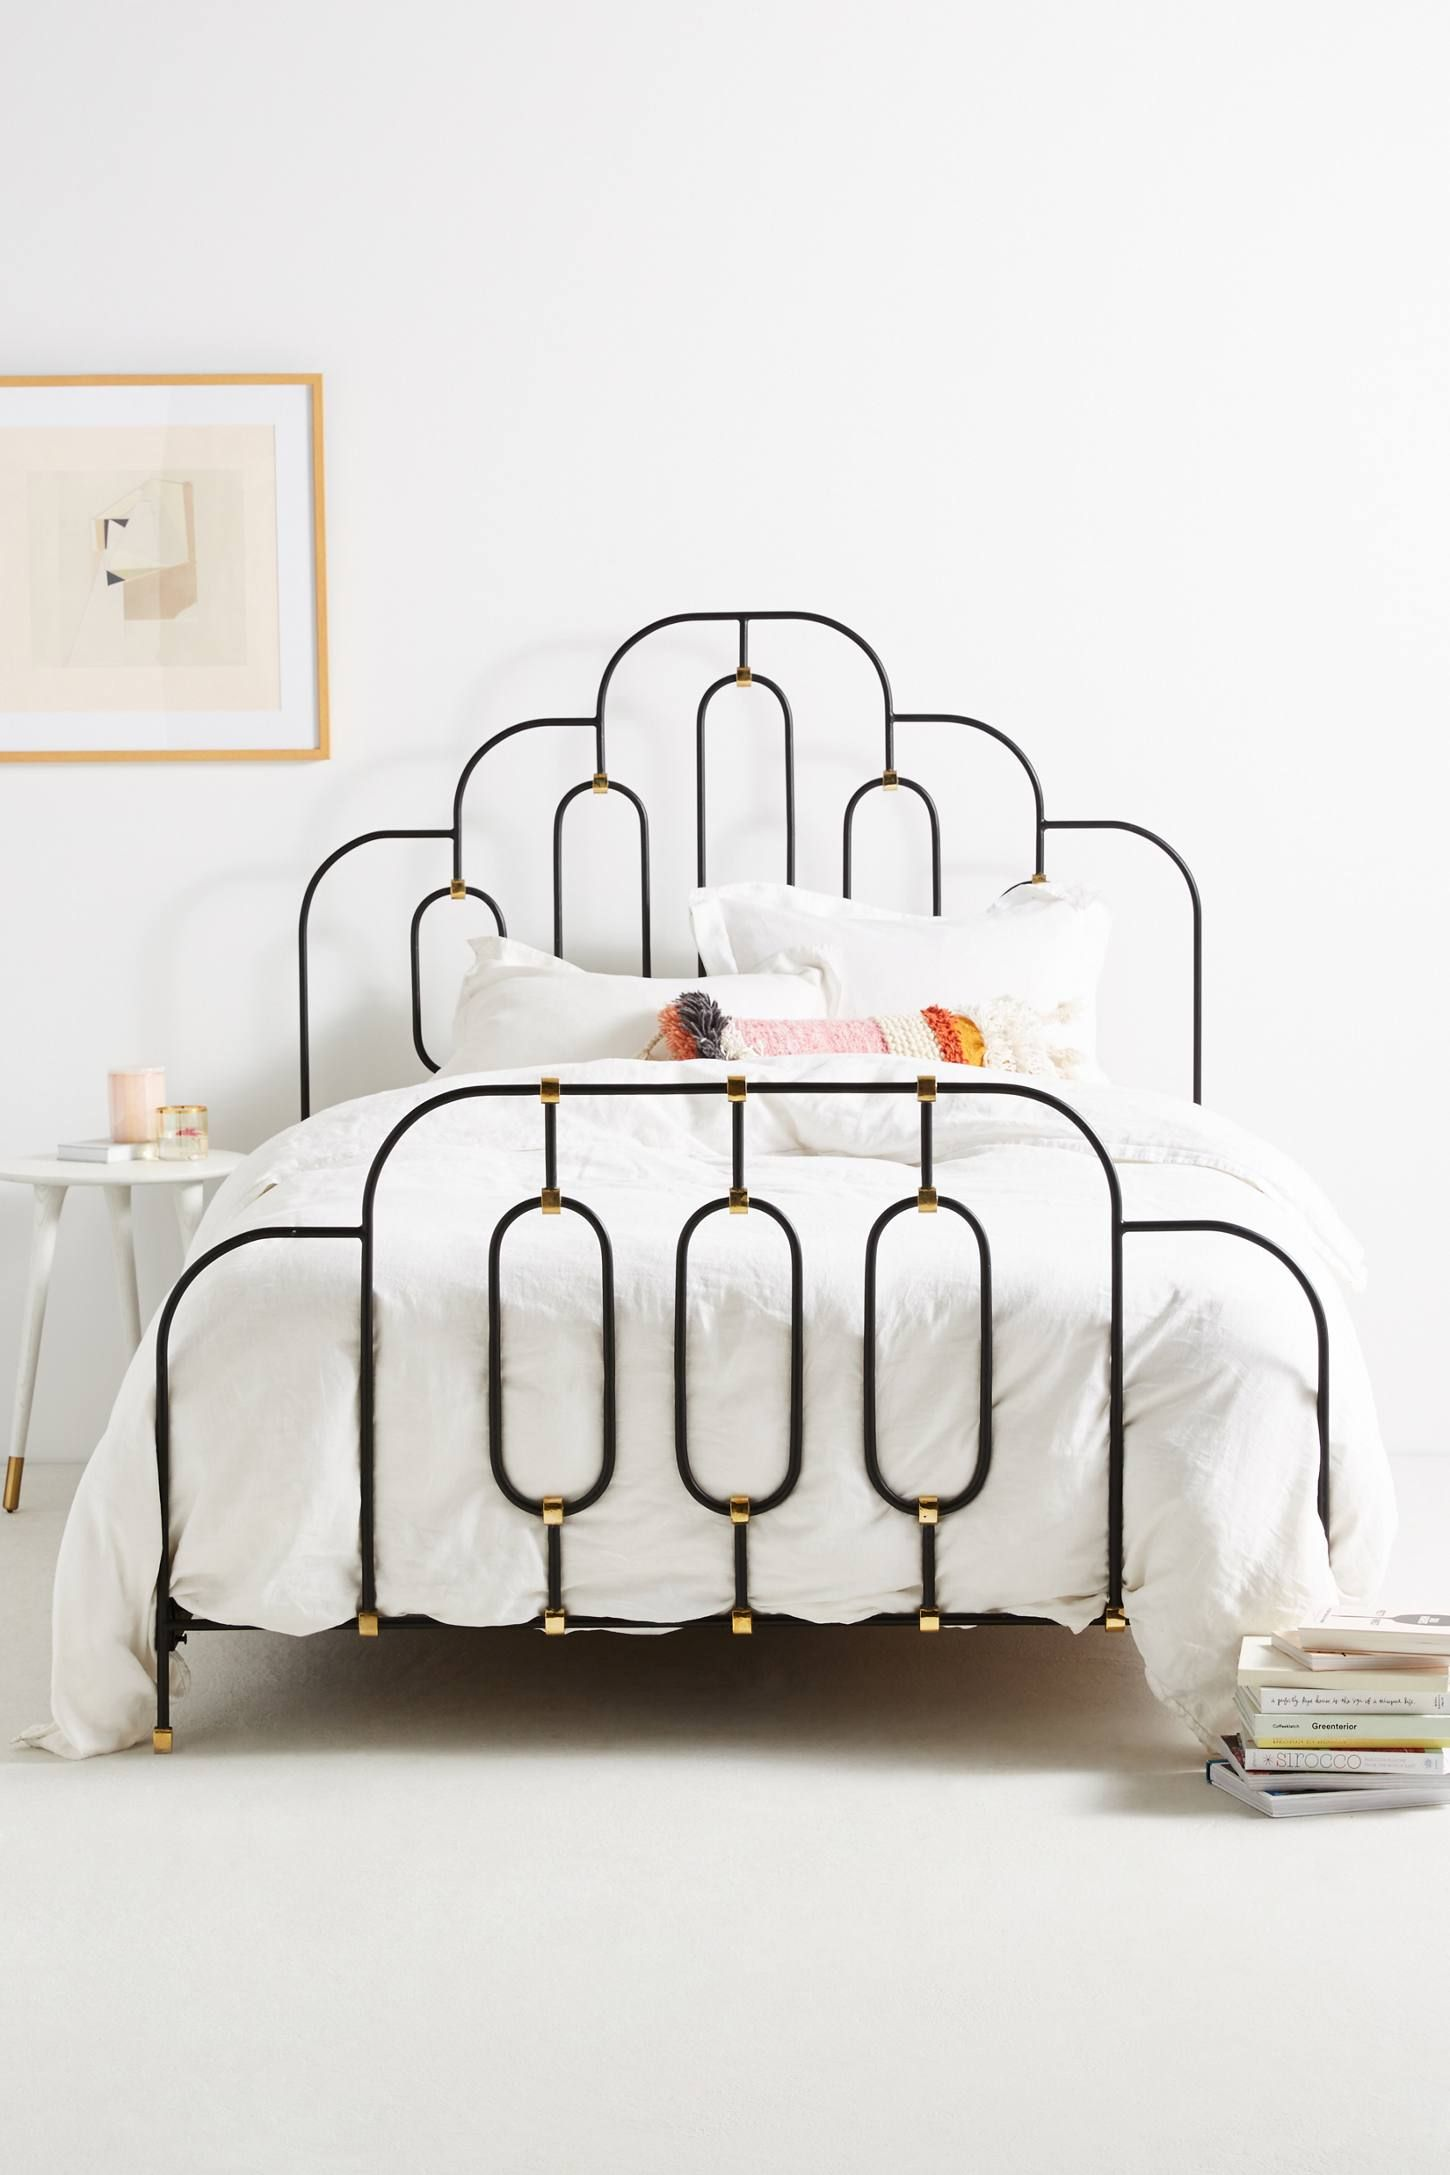 Hanging bed anthropologie - Deco Bed Deco Bed Anthropologie